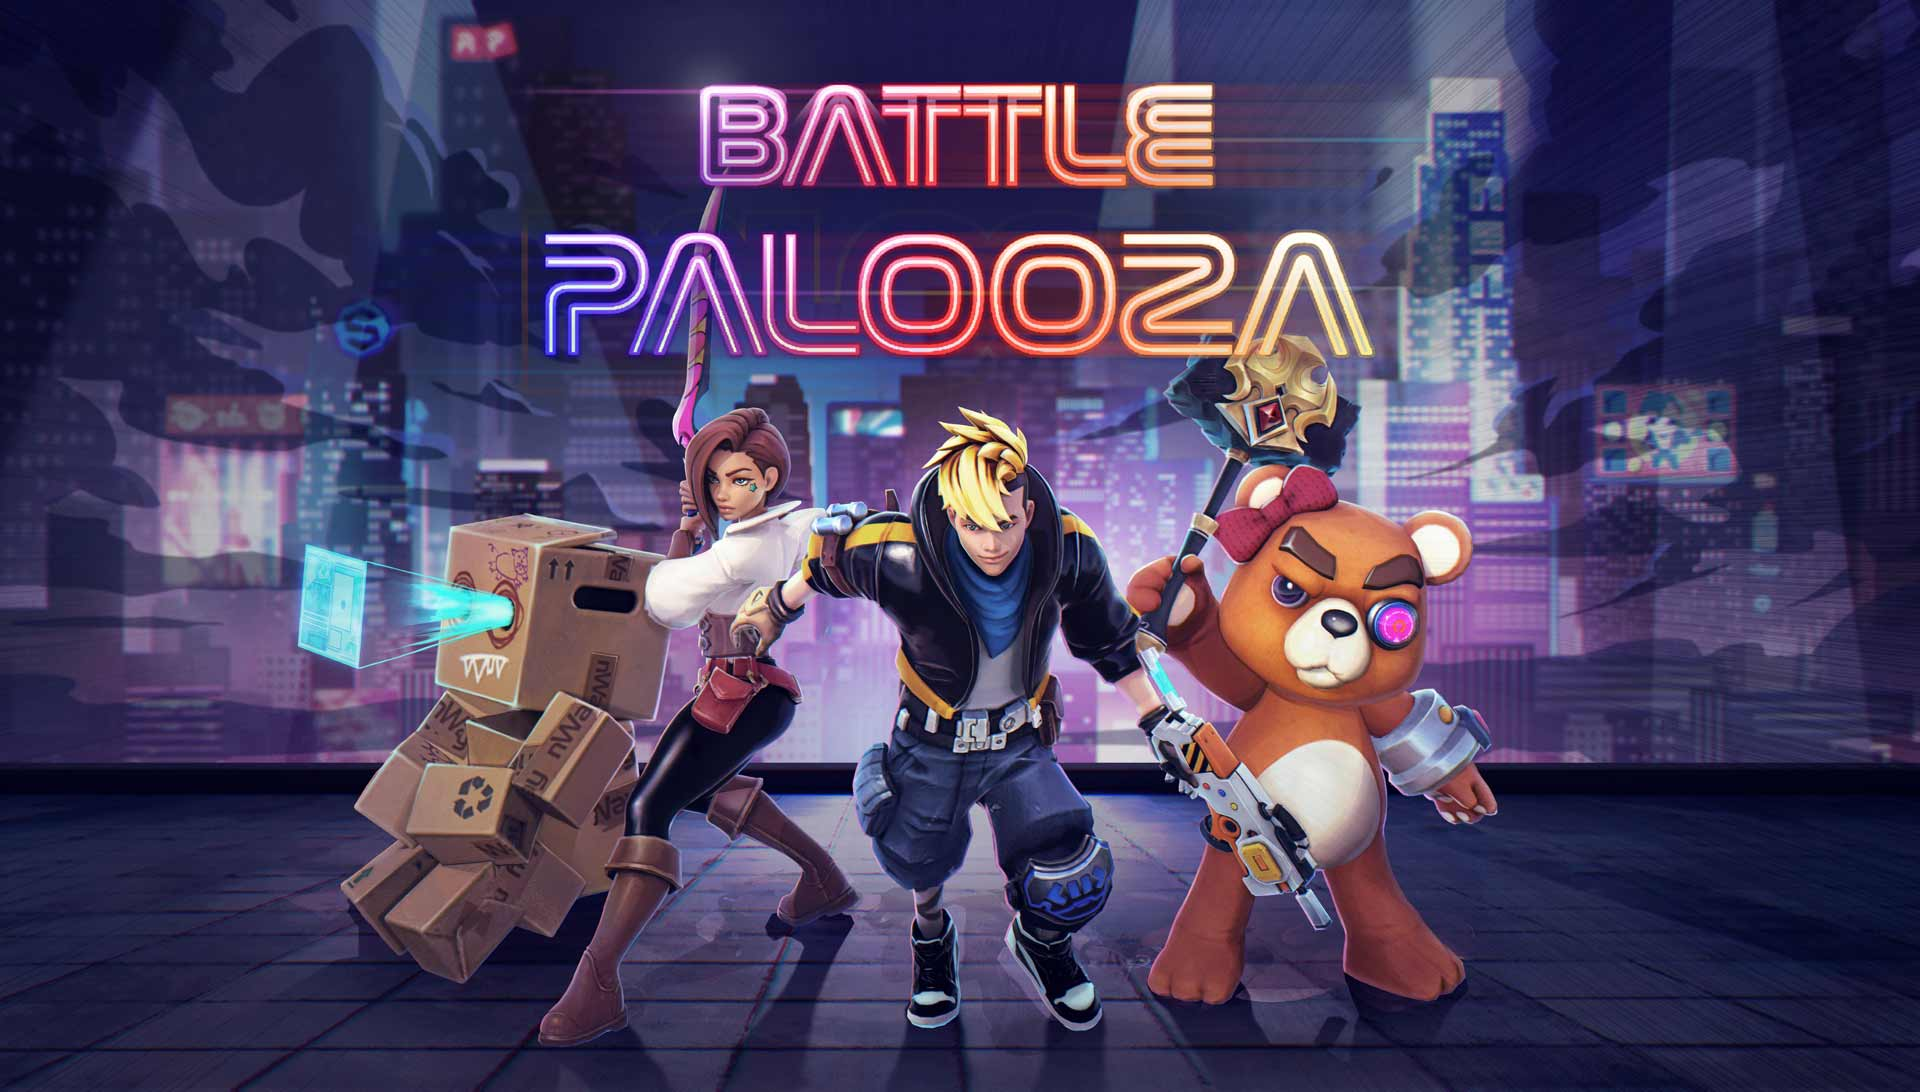 Battlepalooza Interview: Learn more about the latest mobile battle royale game